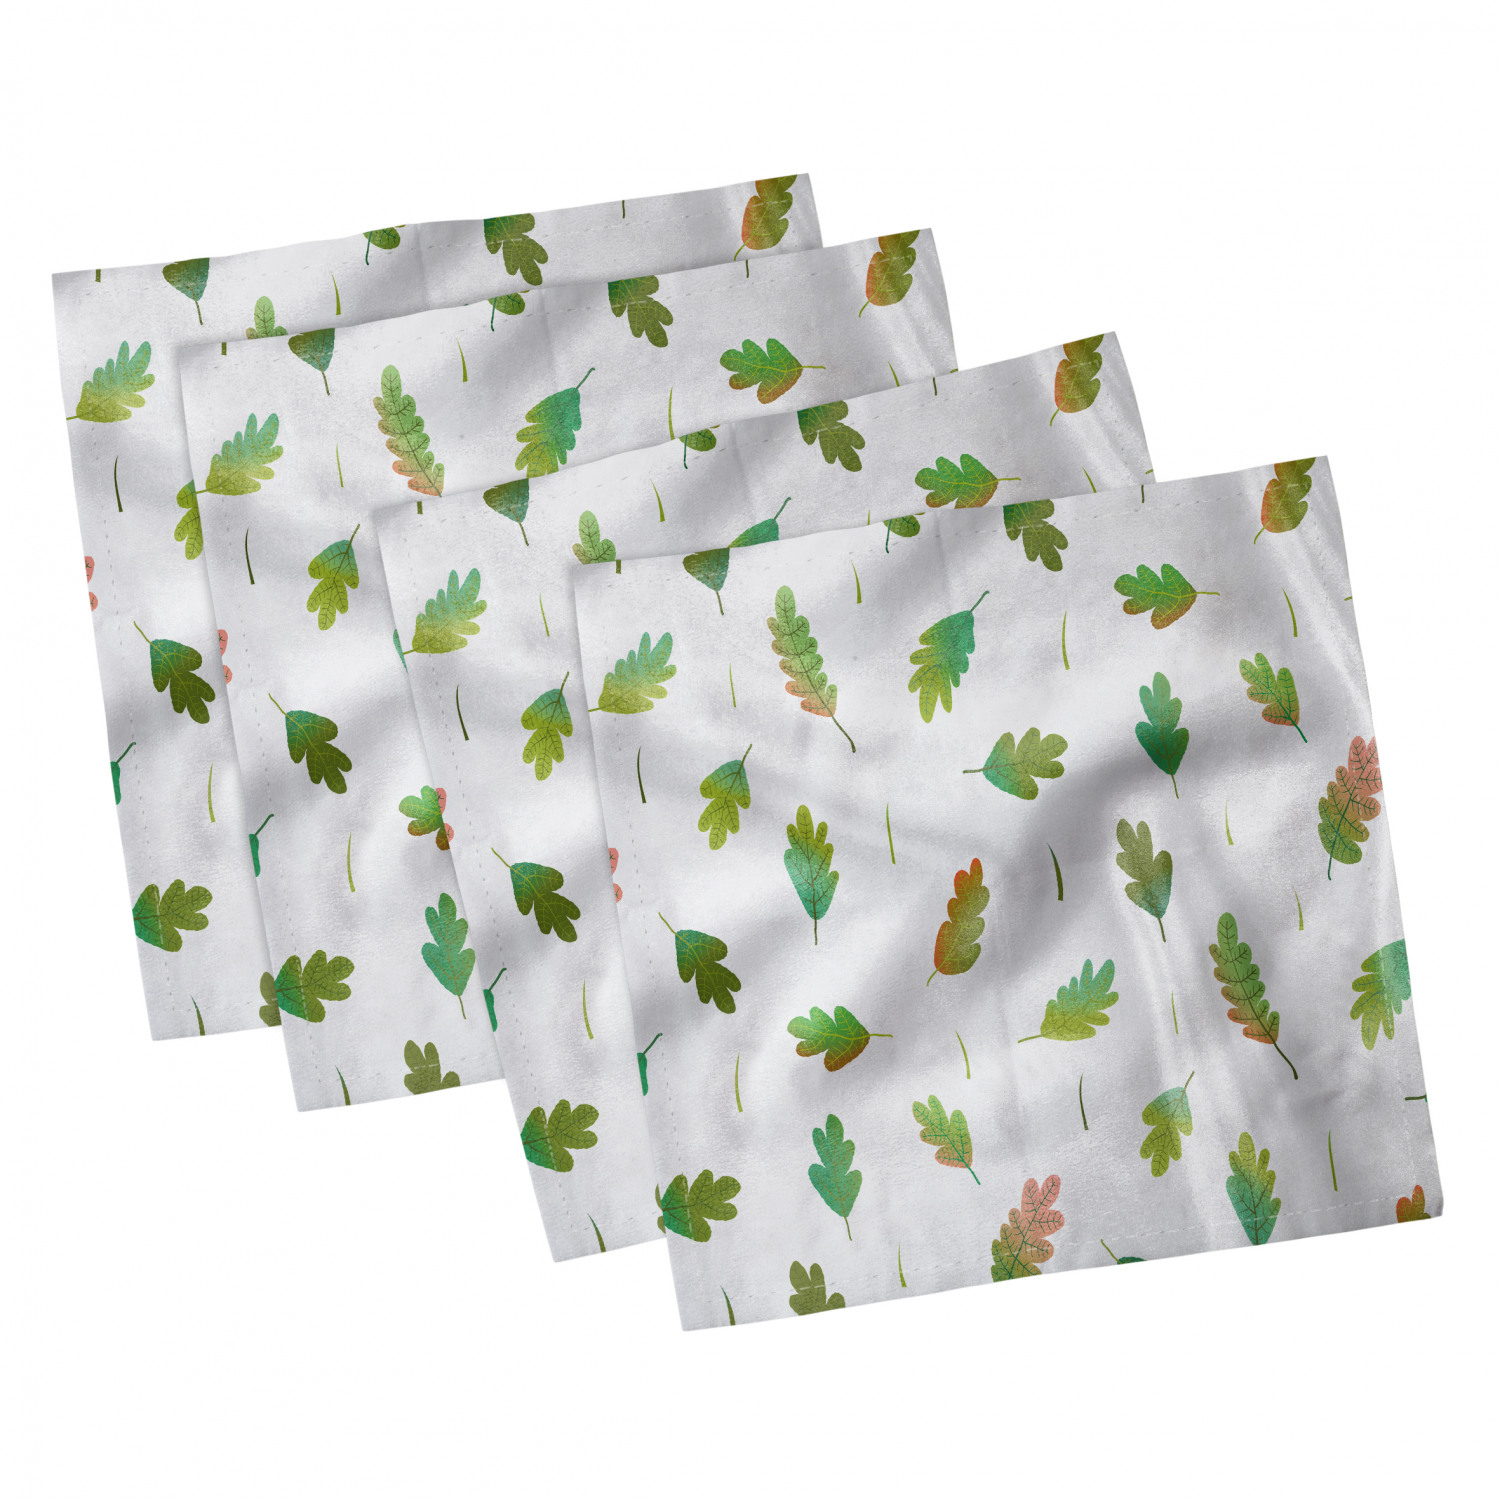 thumbnail 93 - Ambesonne-Leaves-Forest-Decorative-Satin-Napkins-Set-of-4-Party-Dinner-Fabric